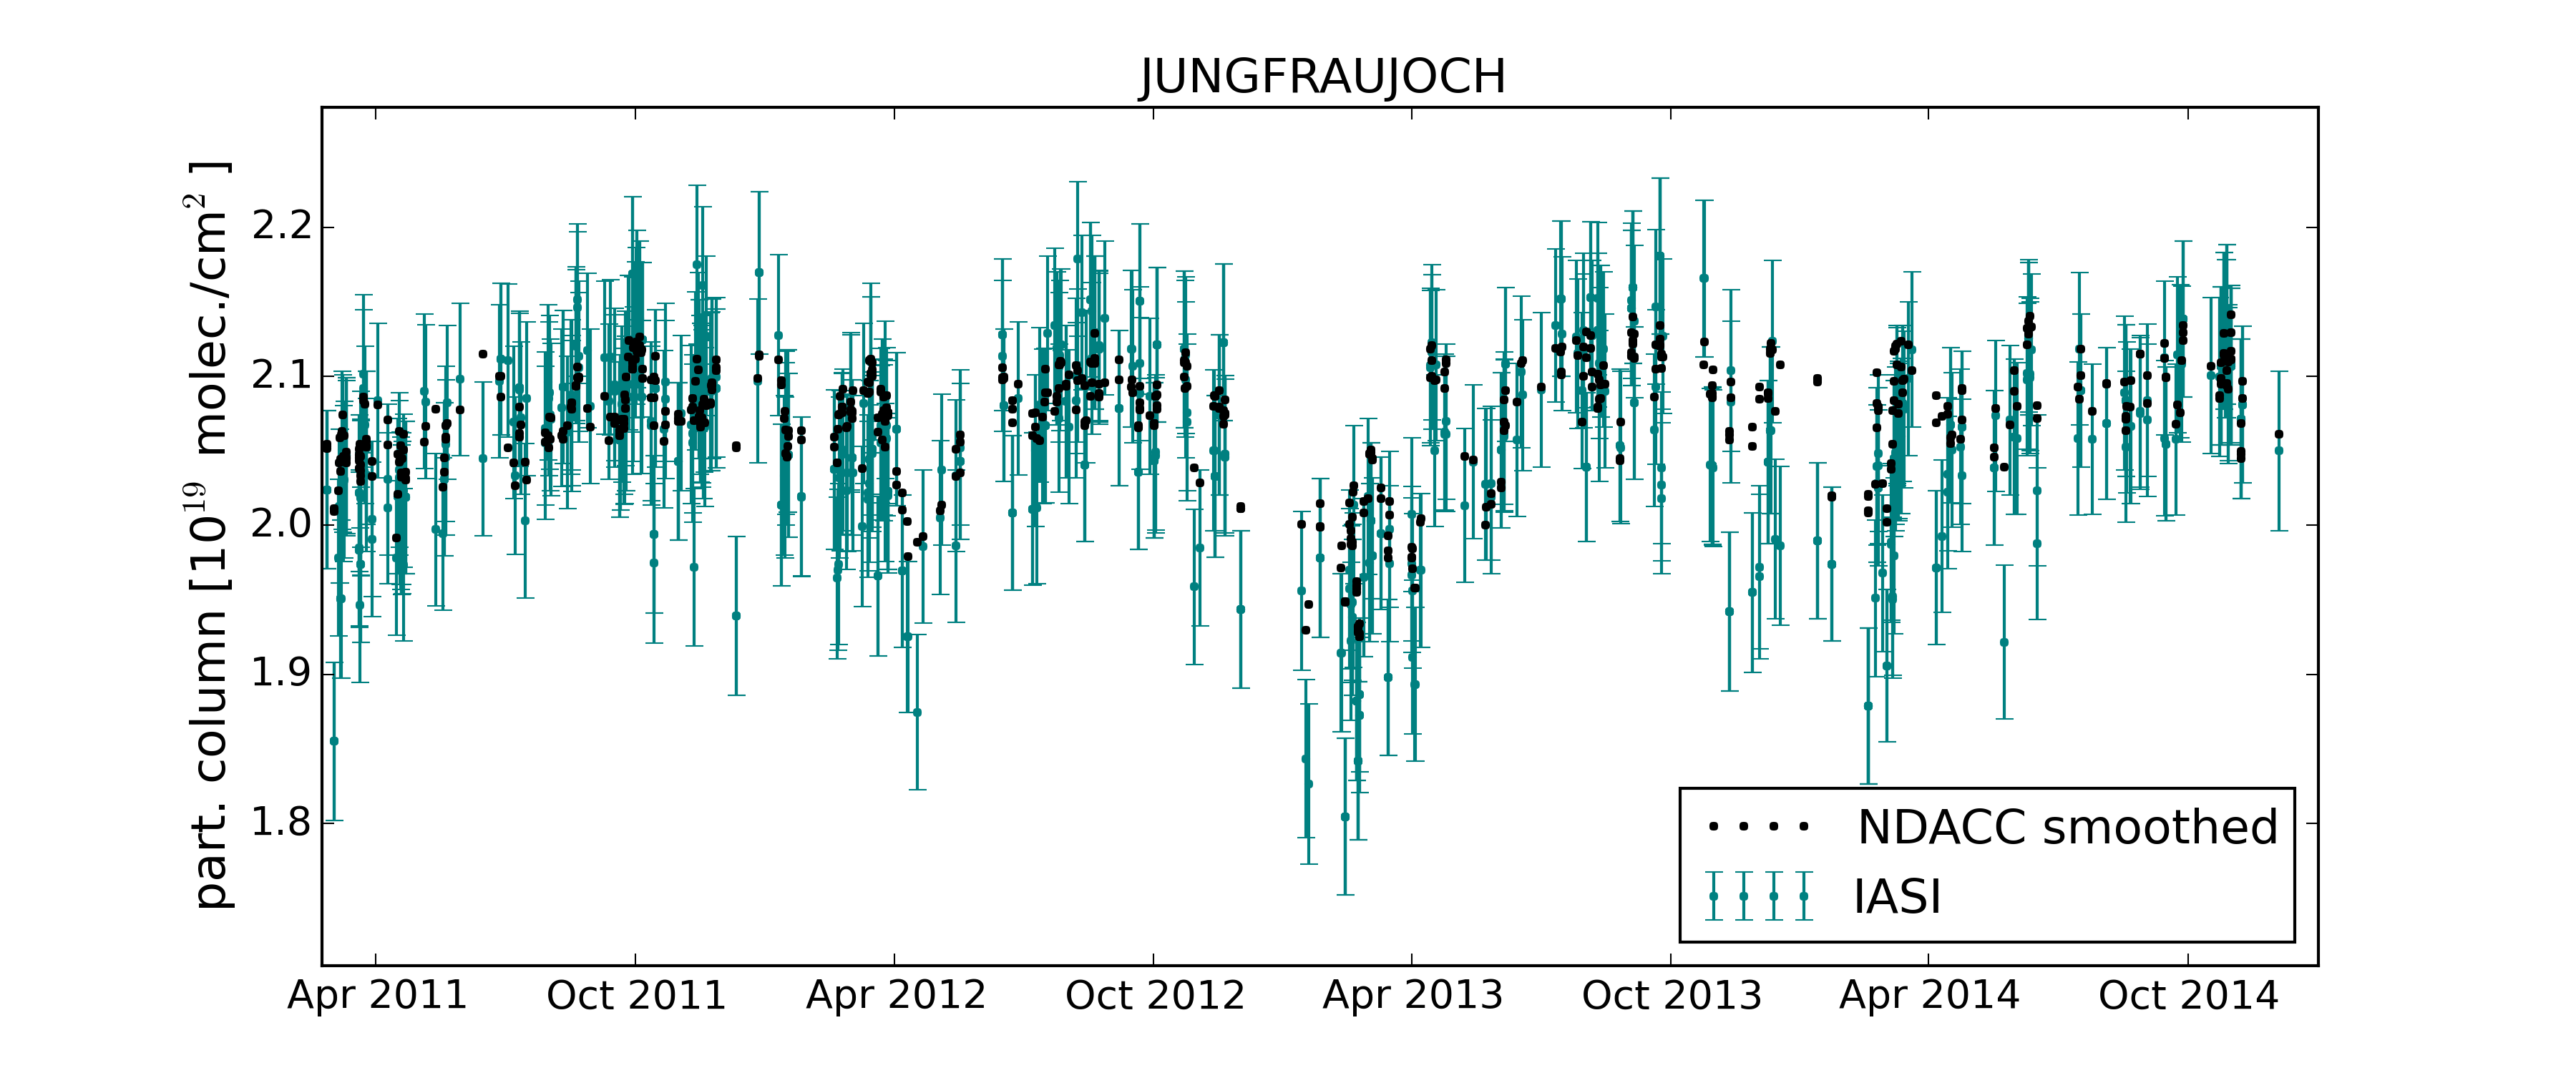 jungfraujoch TEST4 review rms timeseries